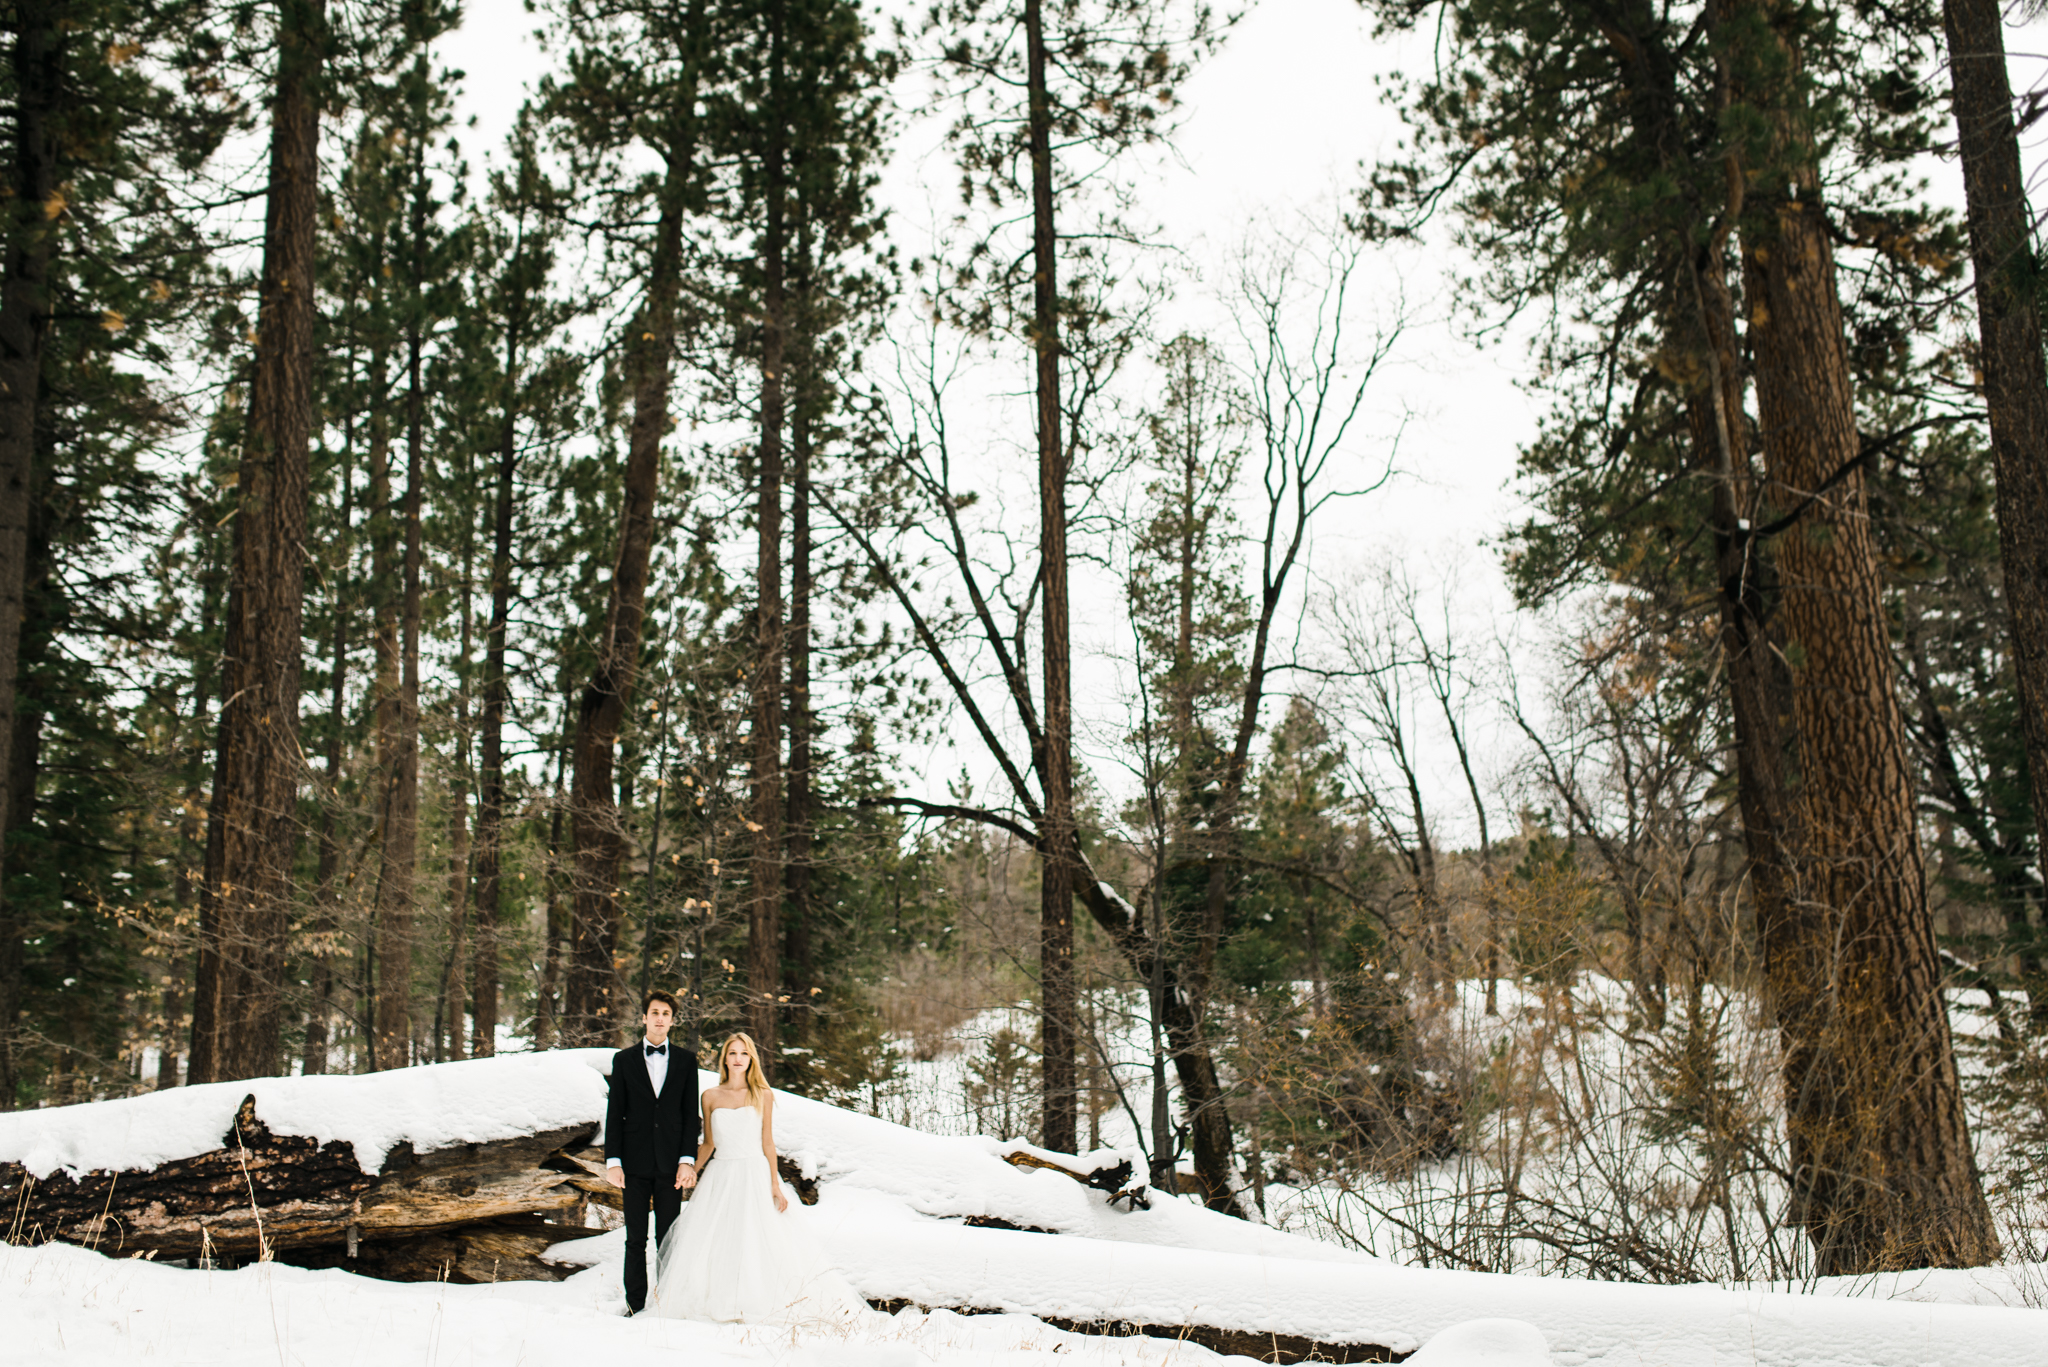 ©Isaiah & Taylor Photography - Ben & Kadin Honeymoon-023.jpg